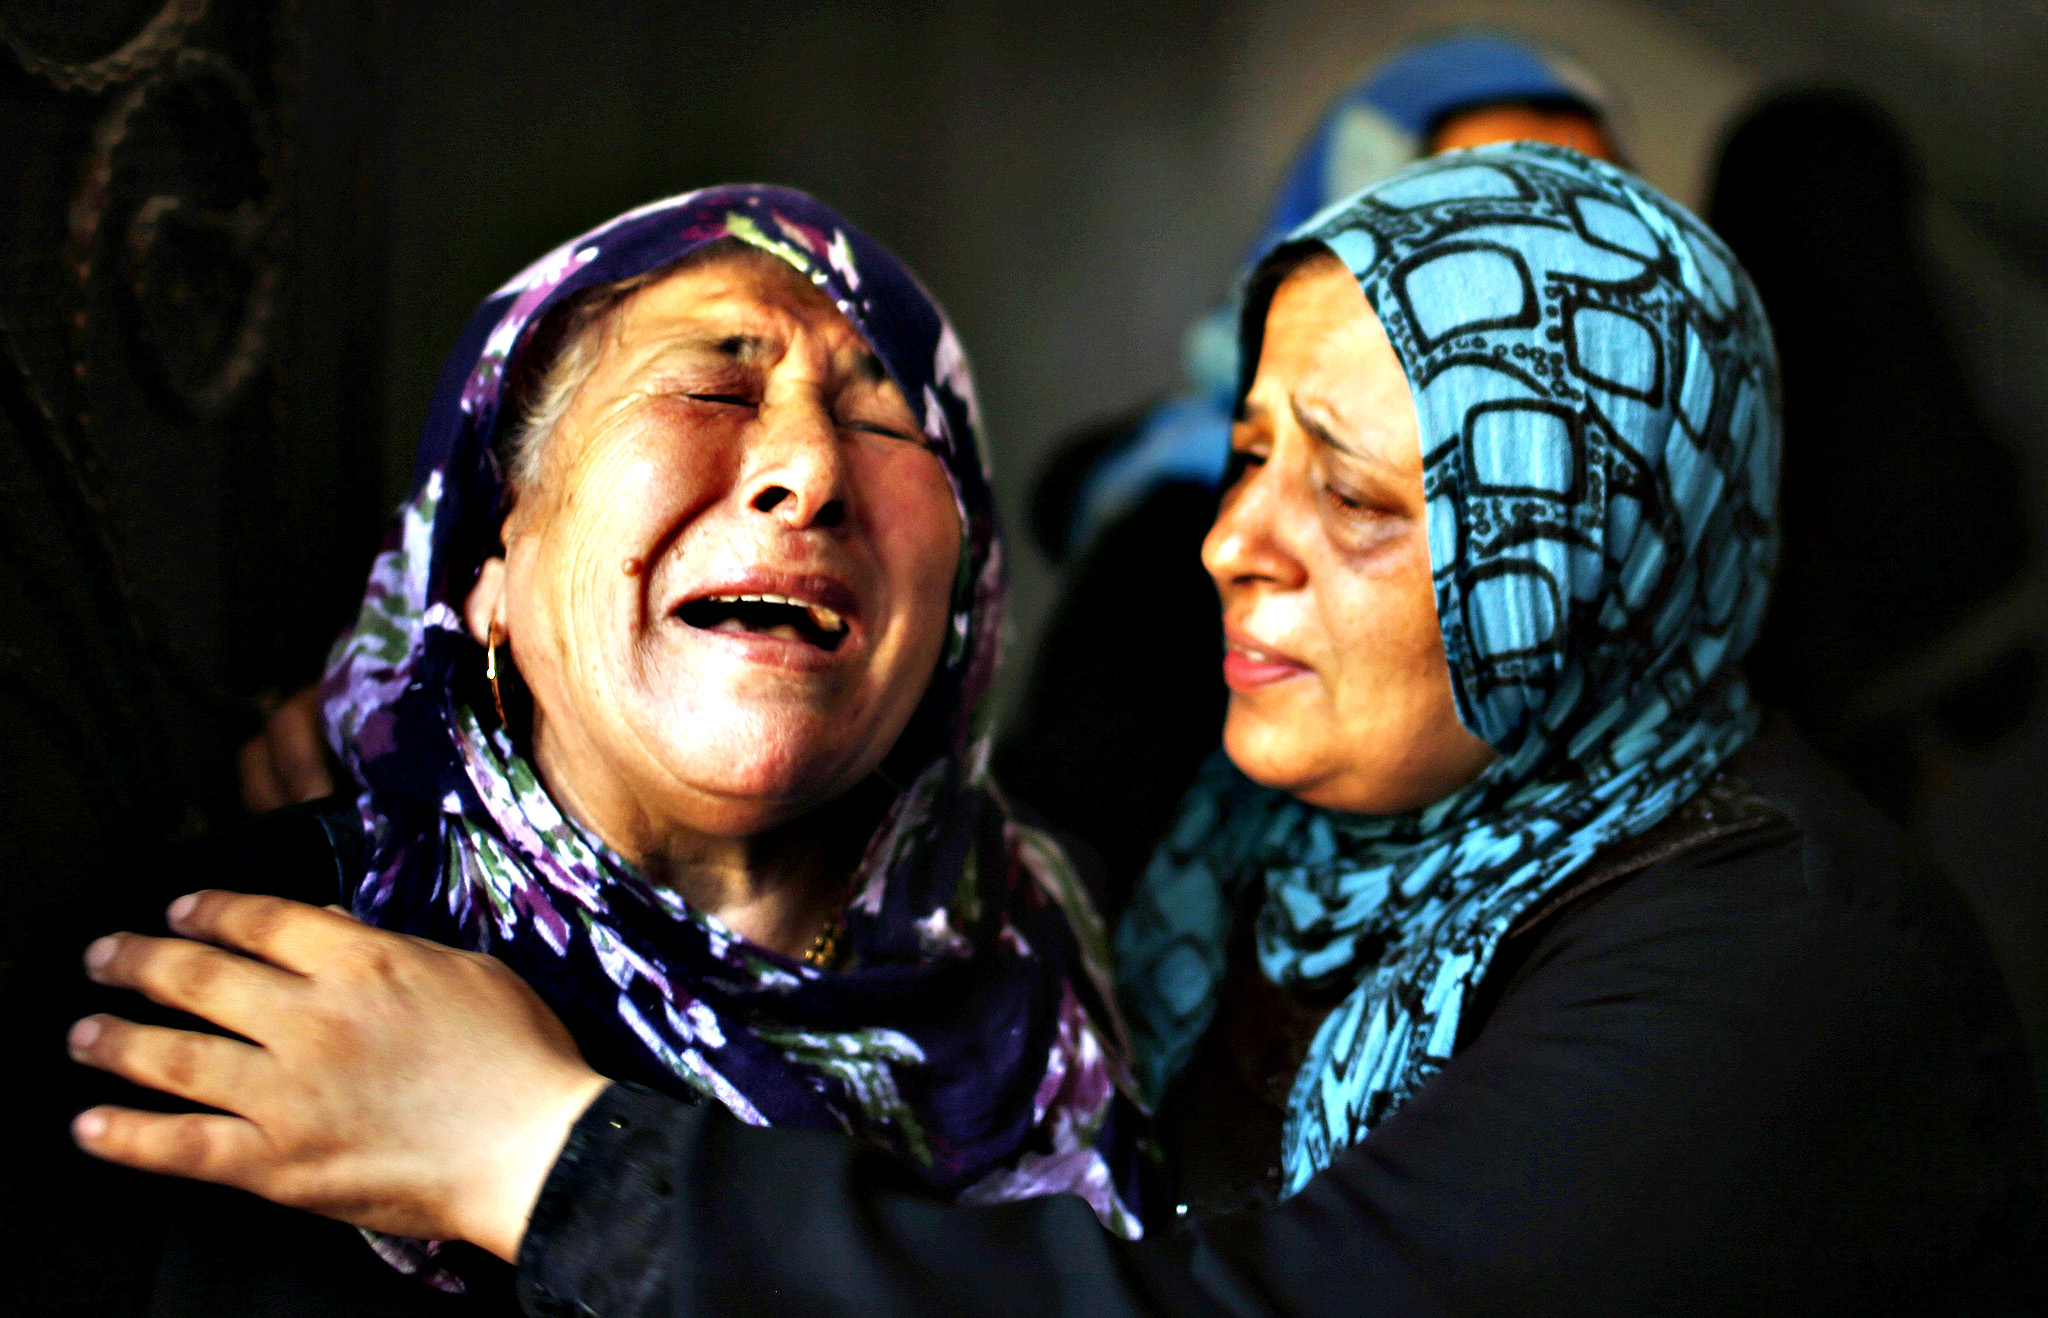 Palestinian relatives mourn during the funeral of members of Hamad family in the town of Beit Hanoun in the northern Gaza Strip July 9, 2014. Militants in Gaza fired more rockets at Tel Aviv on Wednesday, targeting Israel's heartland after Israeli attacks in the enclave that Palestinian officials said have killed at least 27 people. Israel assassinated a senior local leader of the Islamic Jihad militant group in the northern Gaza Strip early on Wednesday, neighbours and hospital officials said, and five others including family members were killed. An Israeli military spokeswoman said she had no initial details on the strike.The militant, Hafez Hamad, two brothers and his parents were killed when his house was bombed in an air strike in the town of Beit Hanoun in the northern Gaza Strip, Hamas media and Gaza interior ministry said. An unidentified woman in the house was also killed.